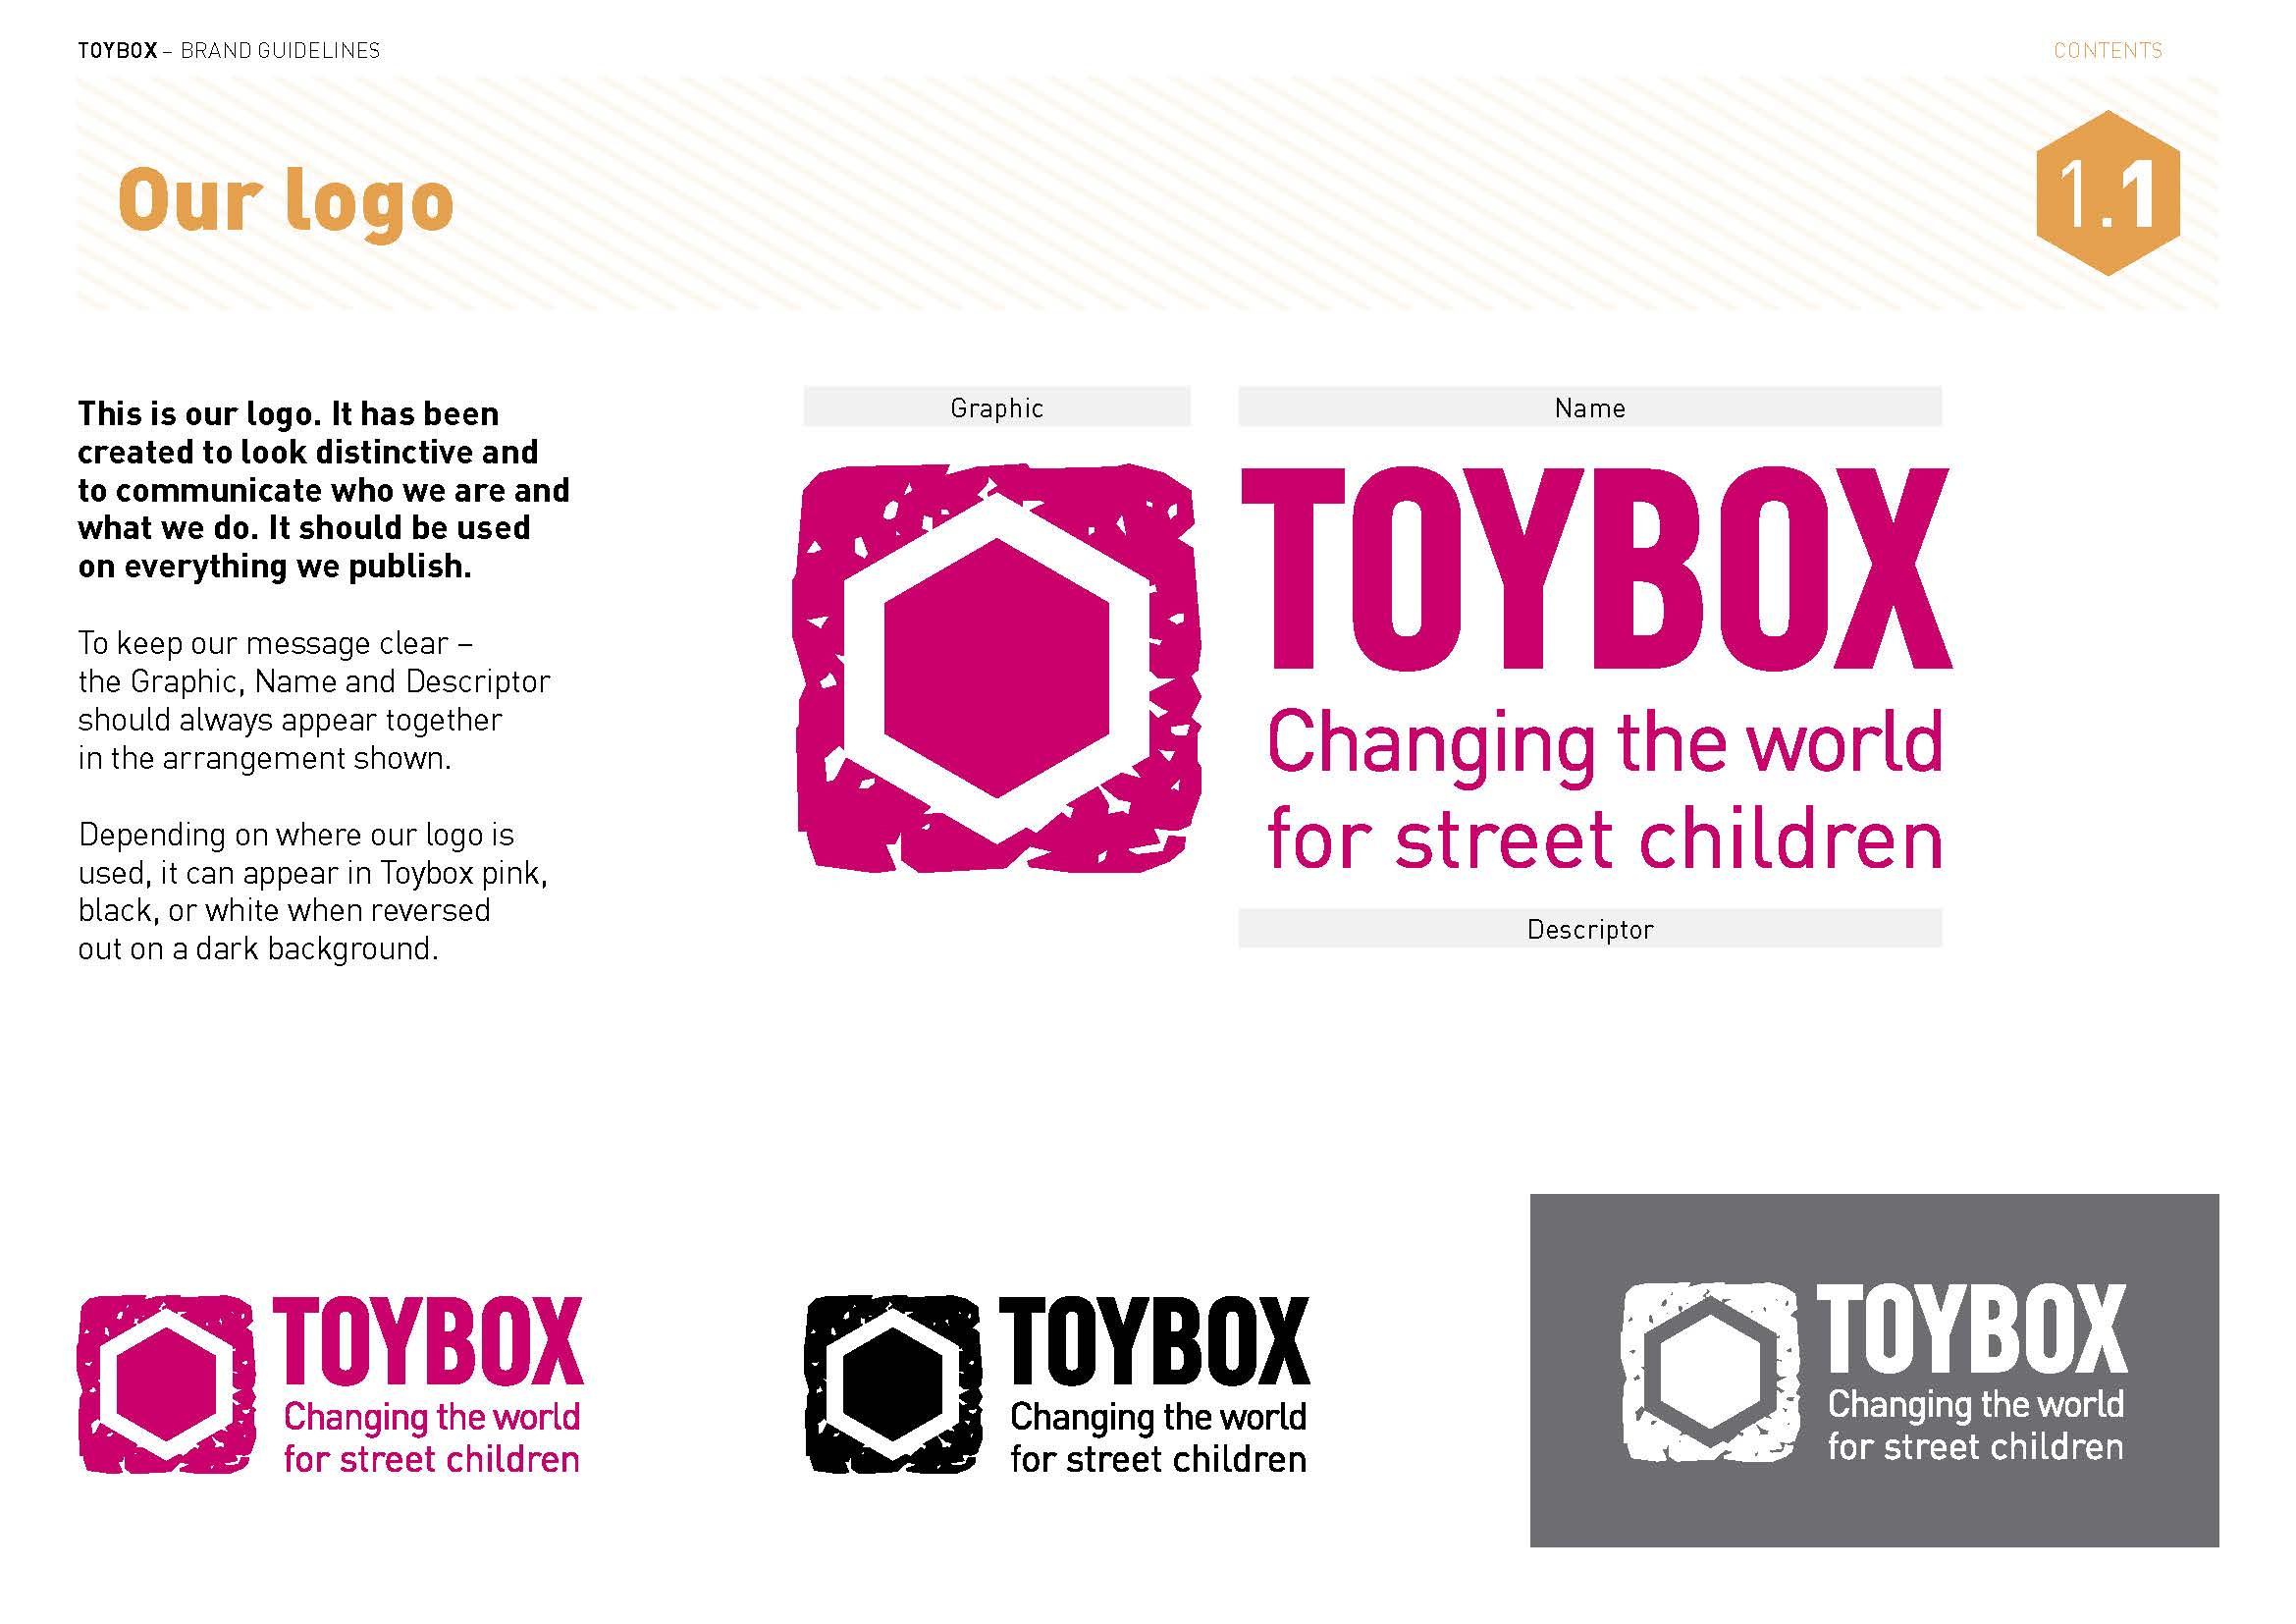 Toybox brand guidelines - our logo